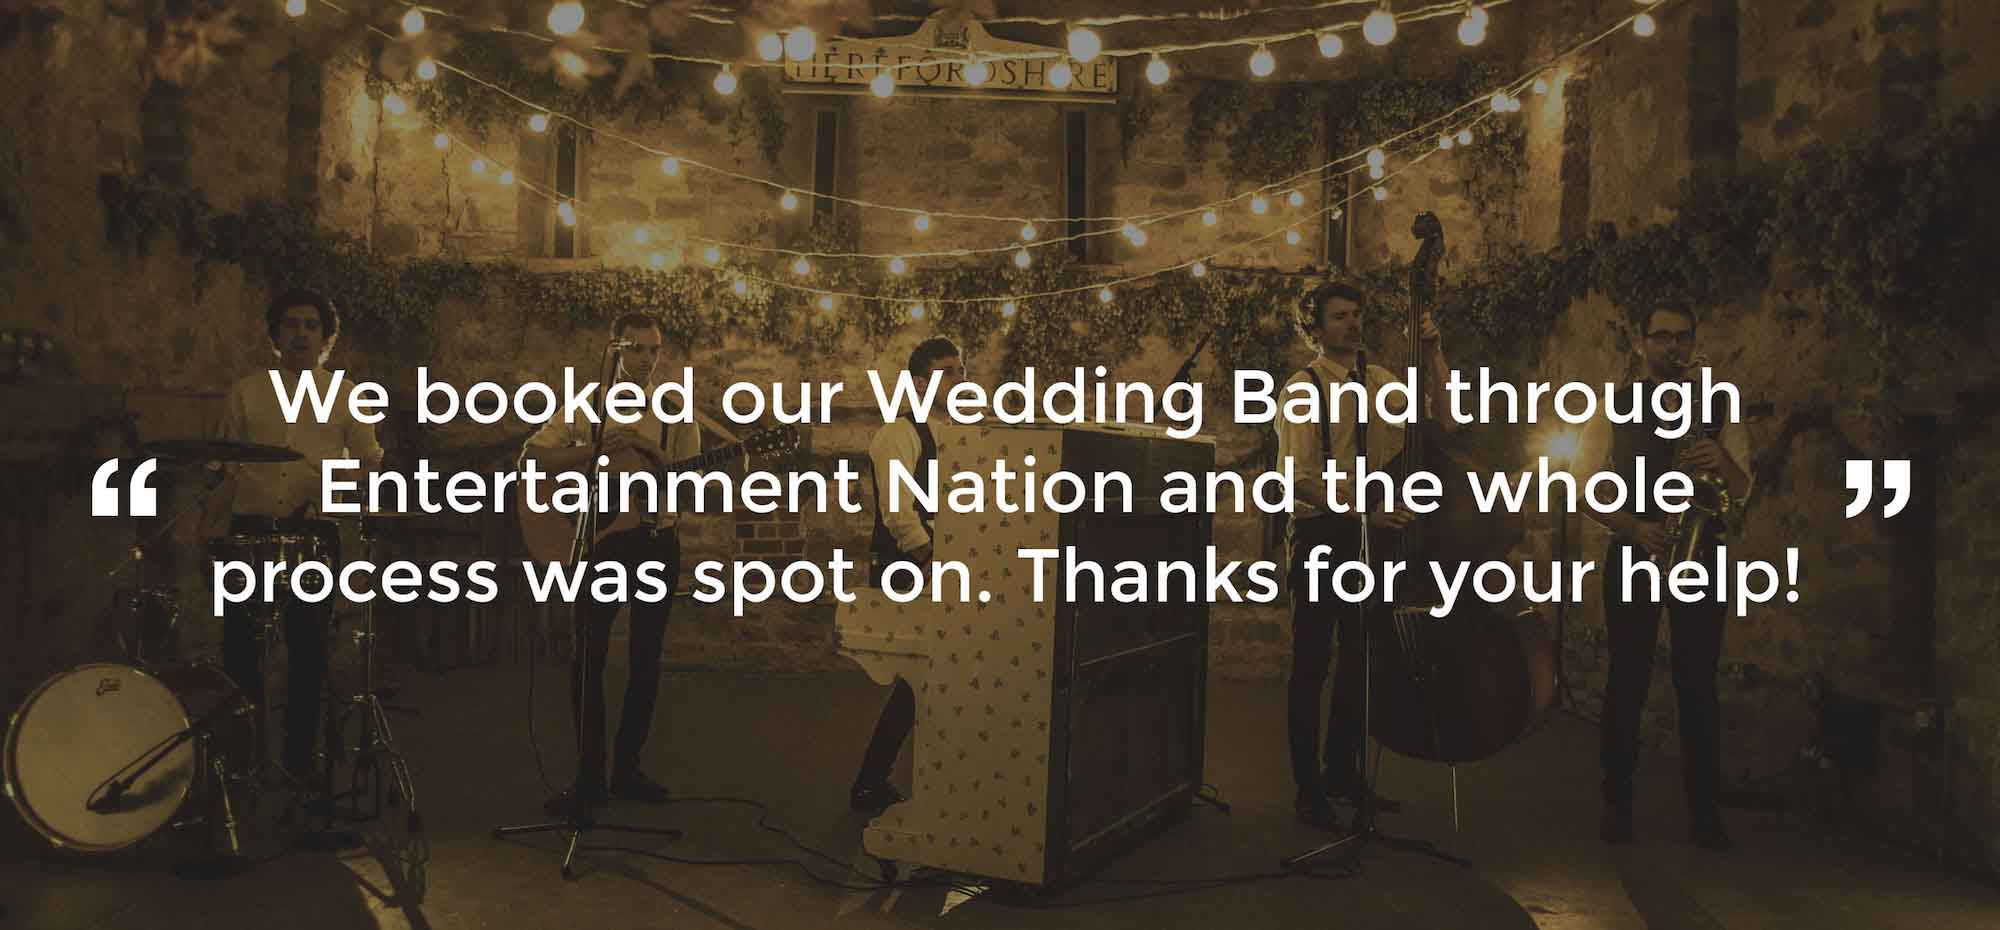 Client Review of a Wedding Band North Yorkshire